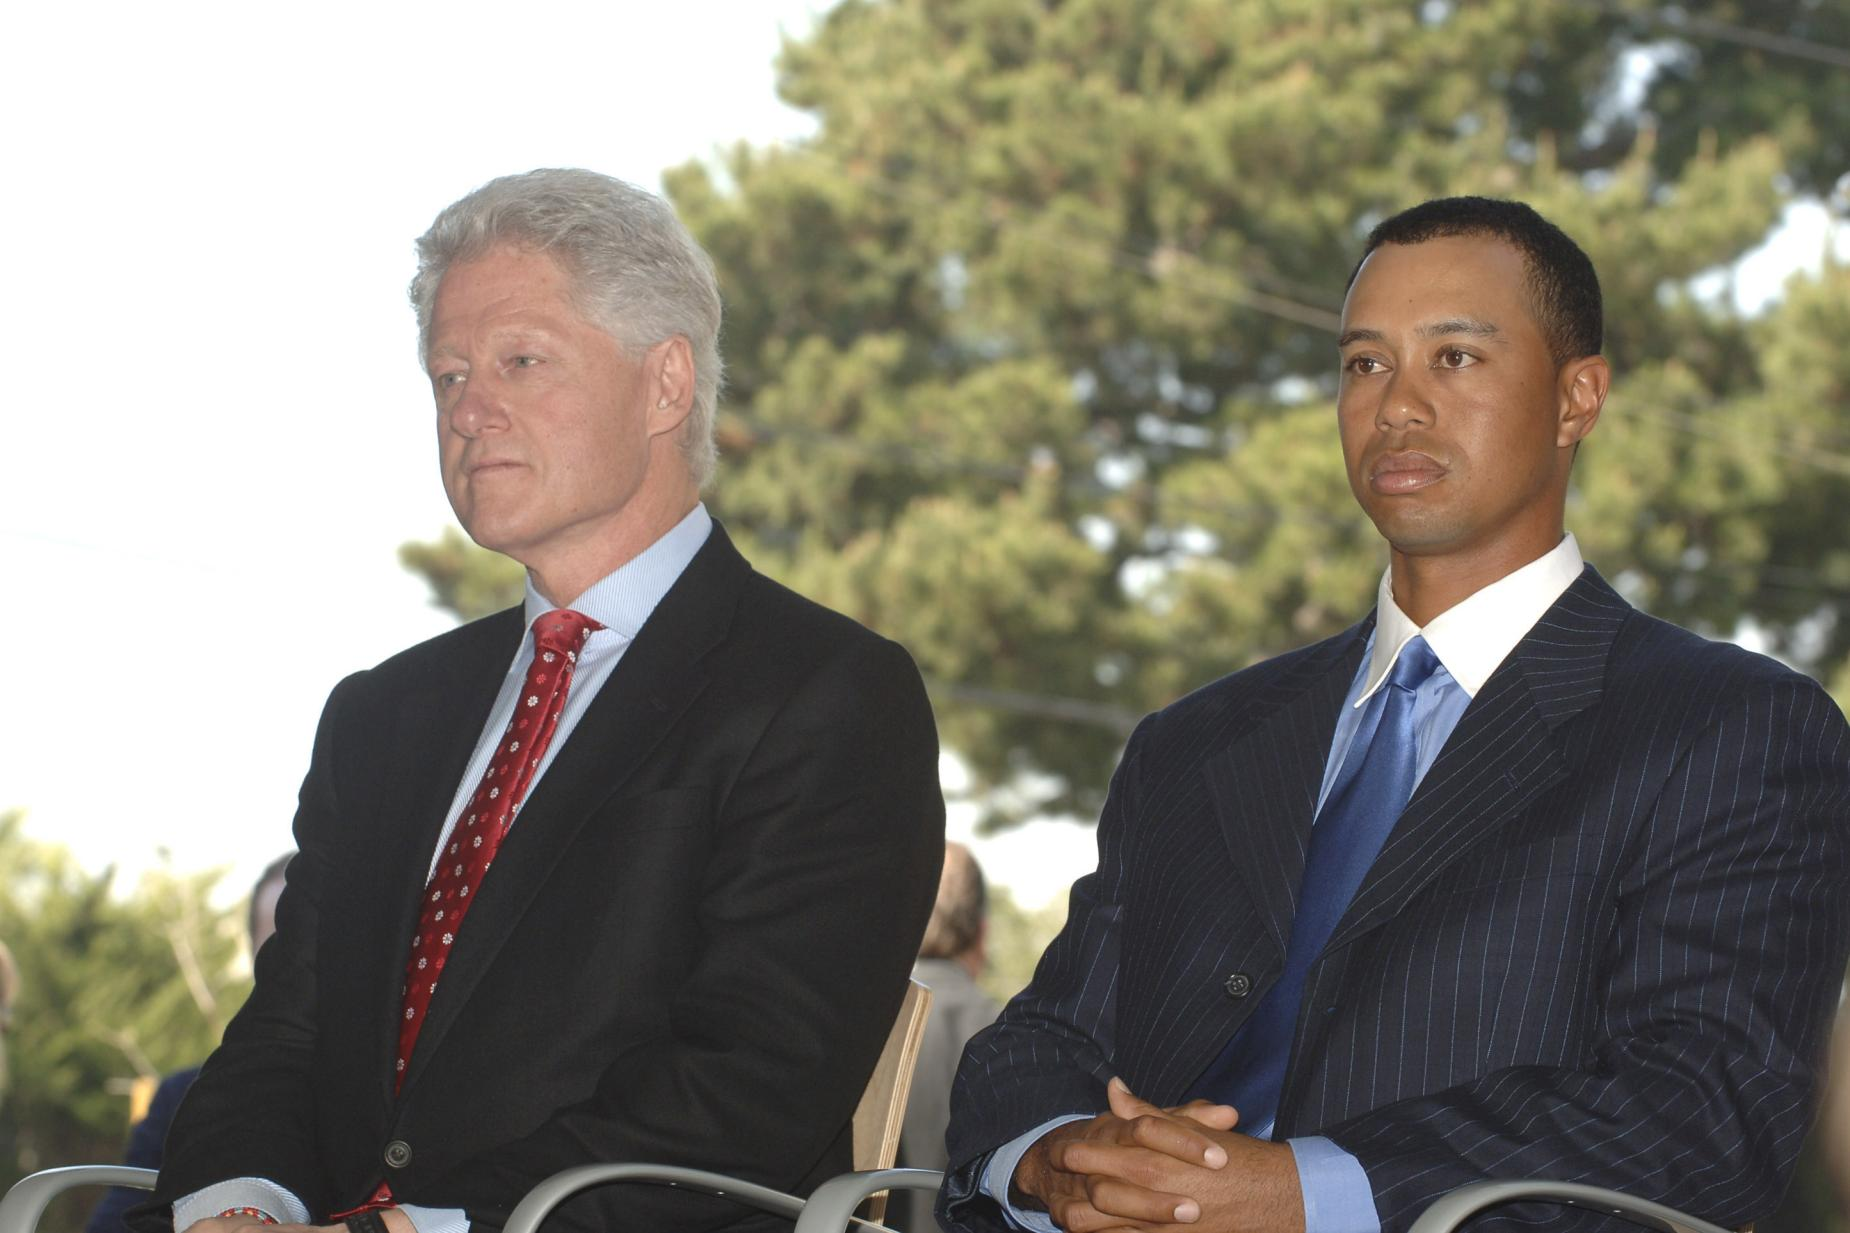 Tiger Woods Learning Center Dedication Ceremony - February 10, 2006